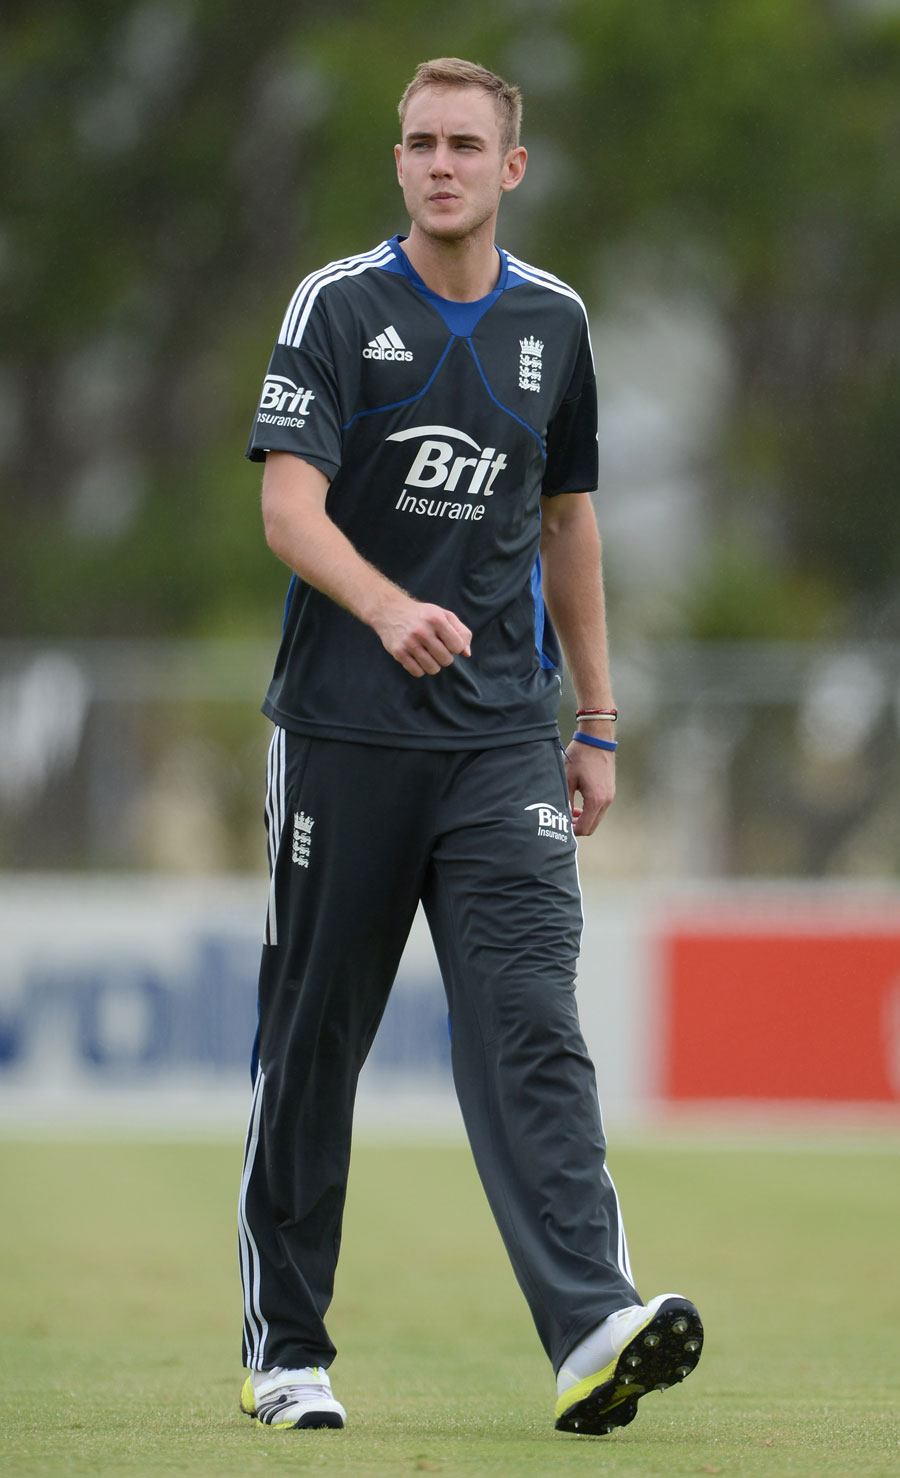 Stuart Broad was able to train ahead of England's first tour match